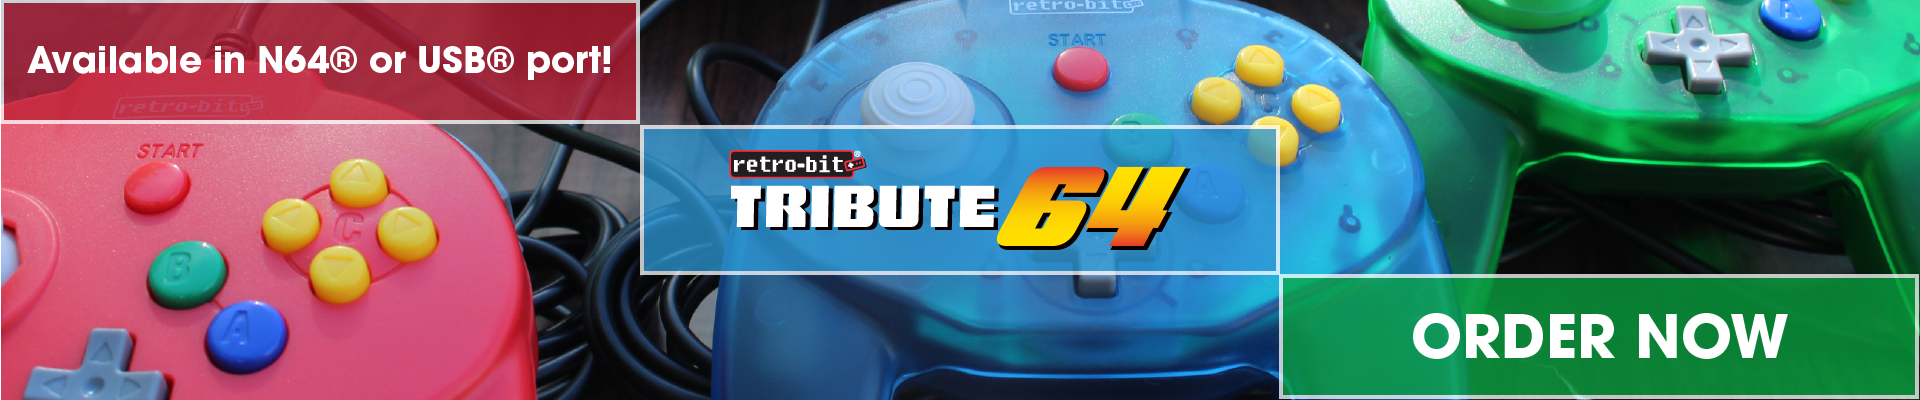 Tribute64, USB, N64, Order Now